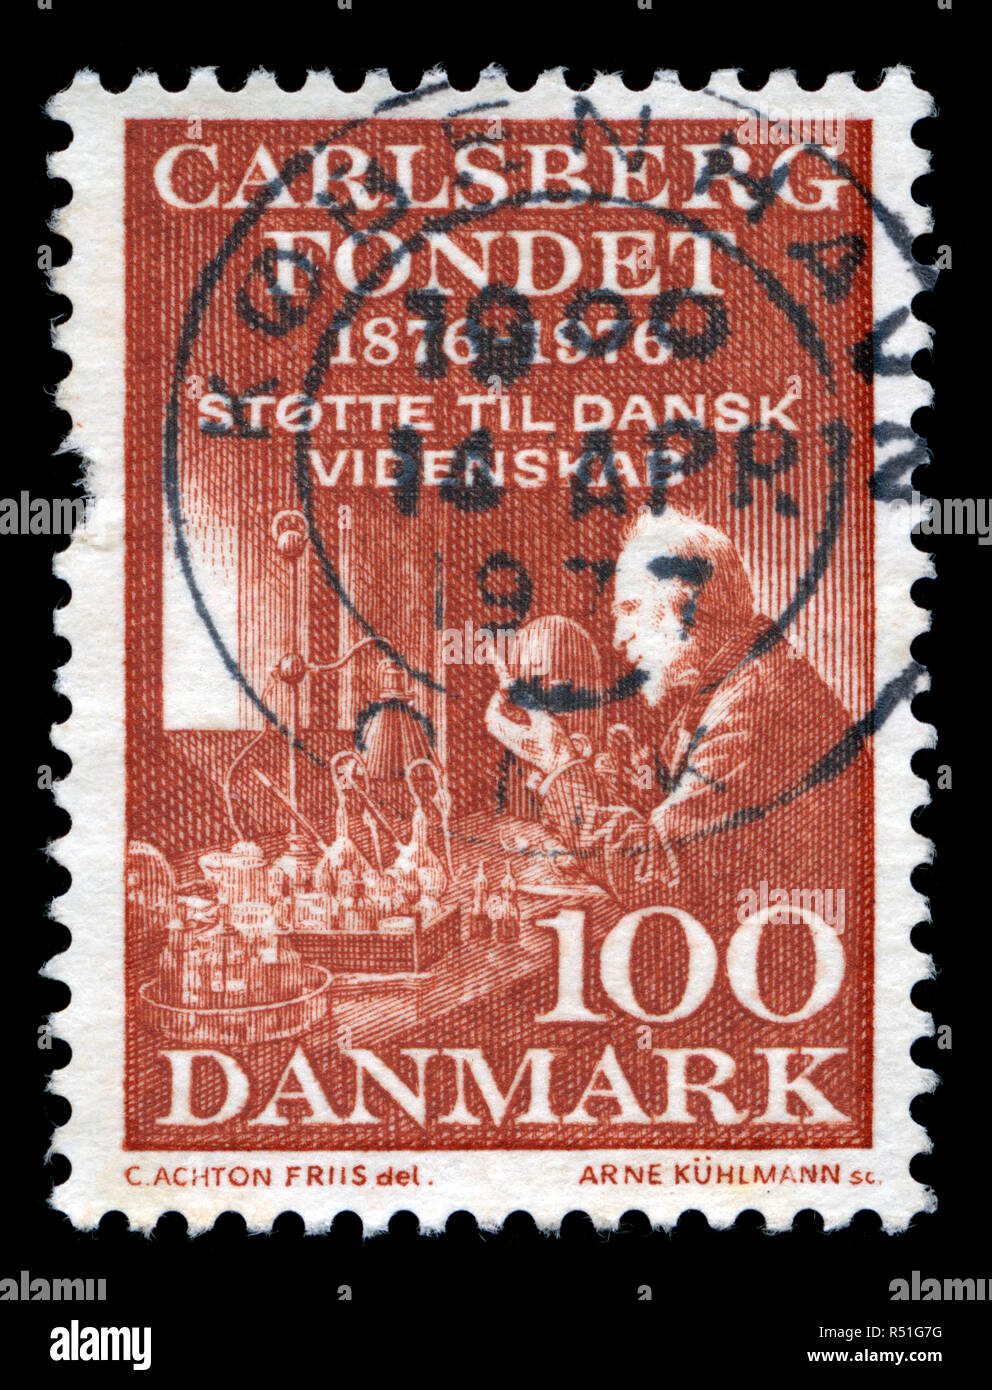 Postage stamp from Denmark in the Carlsberg Foundation - Centenary series issued in 1976 - Stock Image